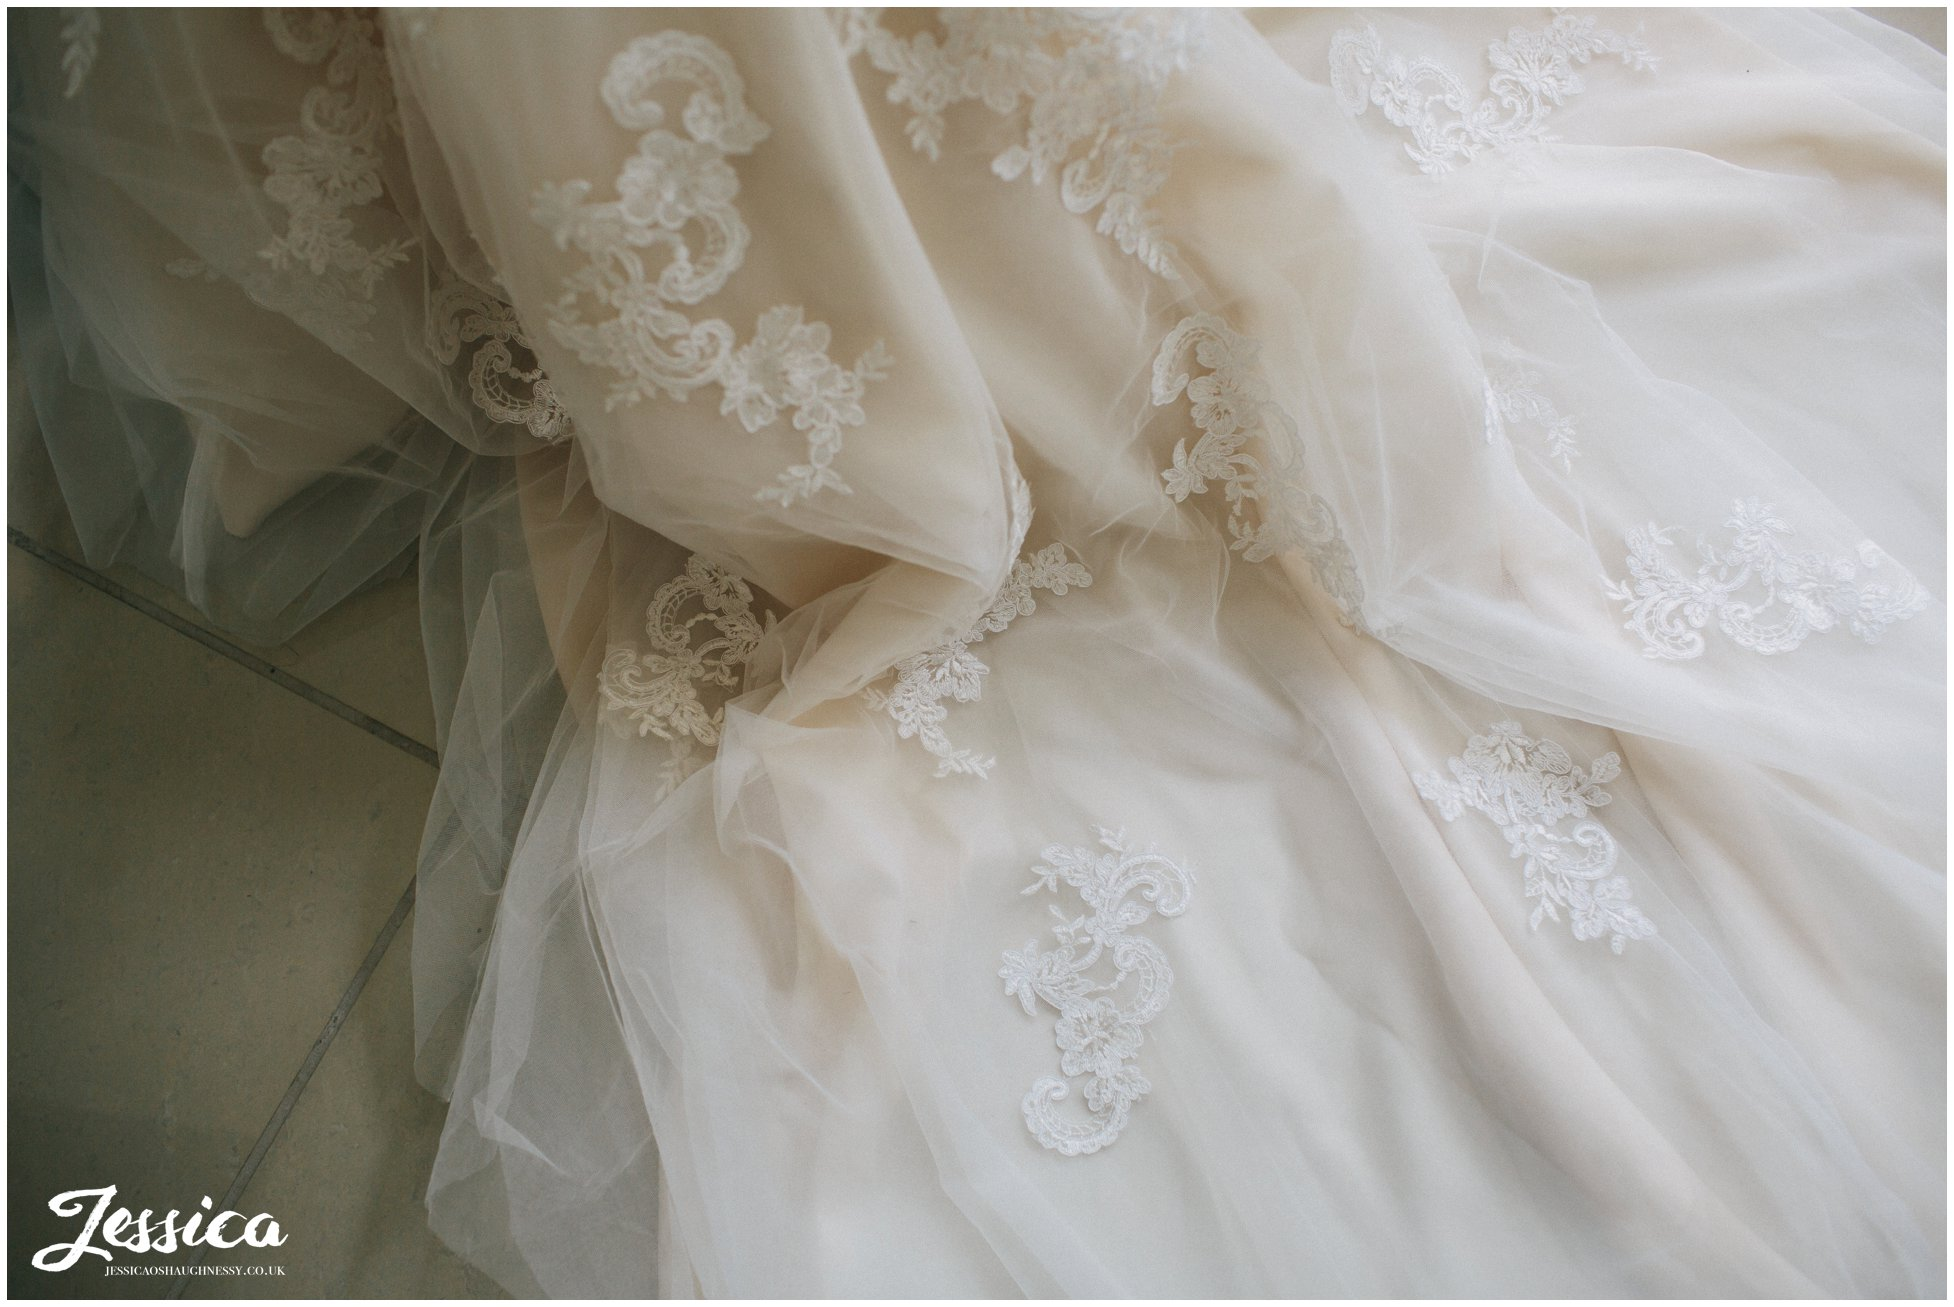 close up of lace detail on the train of the wedding dress